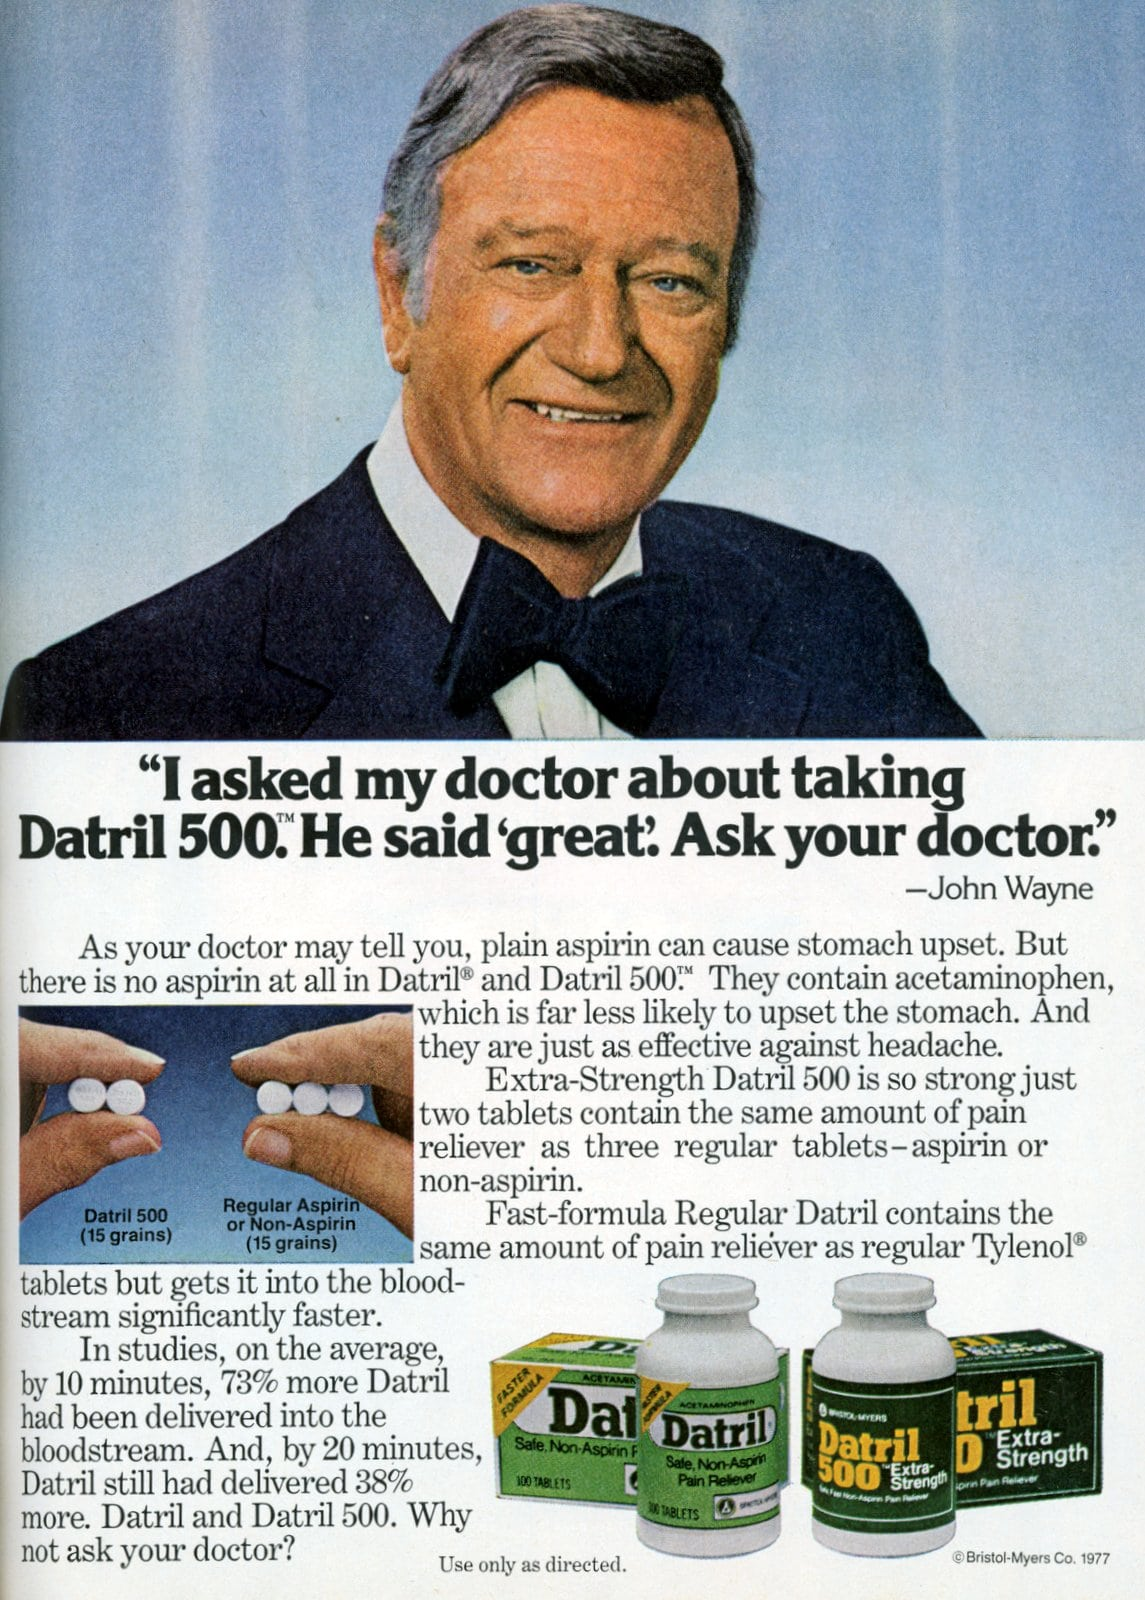 John Wayne for Datril 500 pain reliever (1970s)